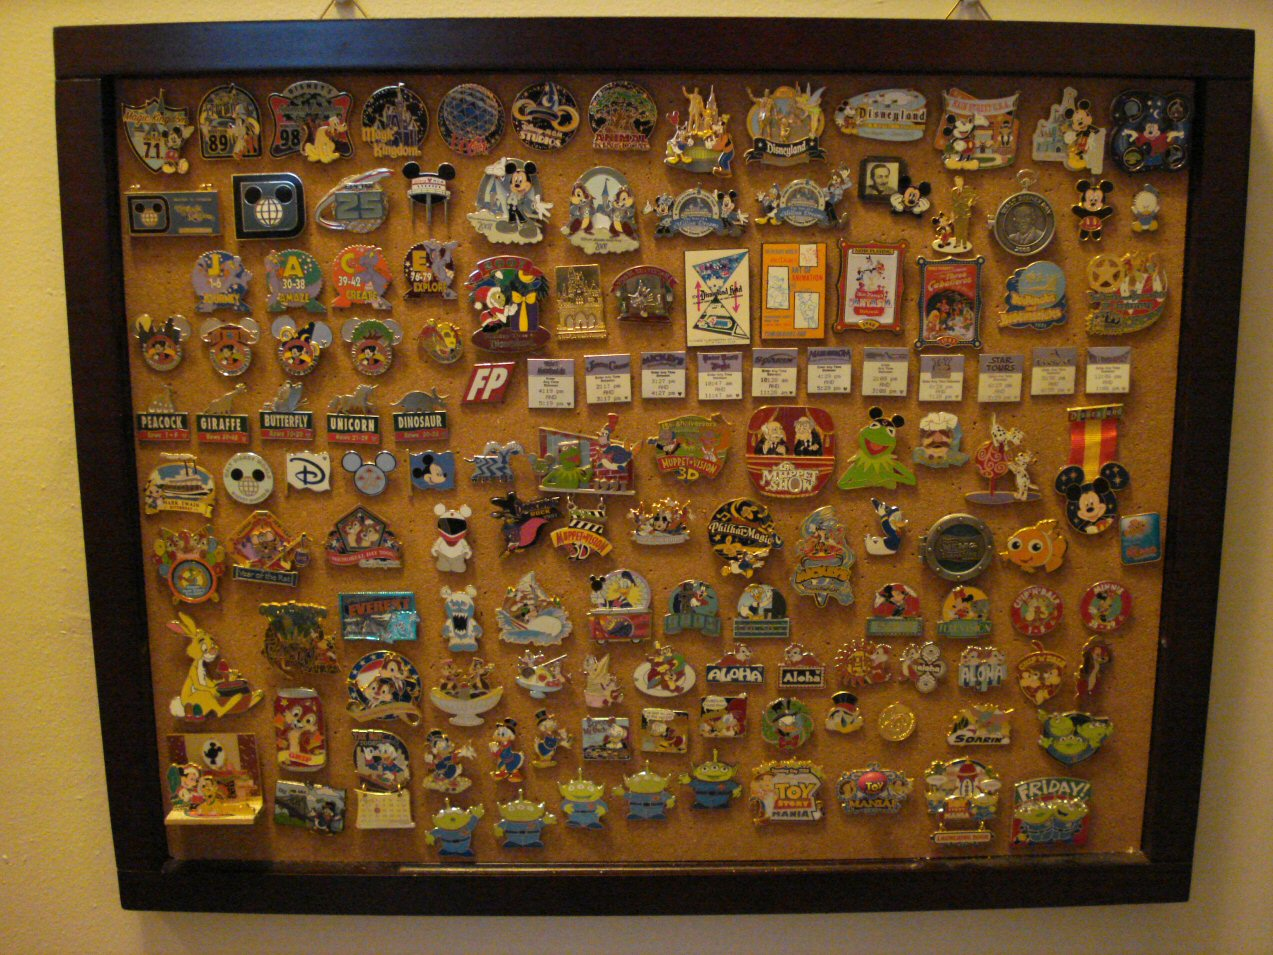 Show Off Your Pin Collection! - MiceChat